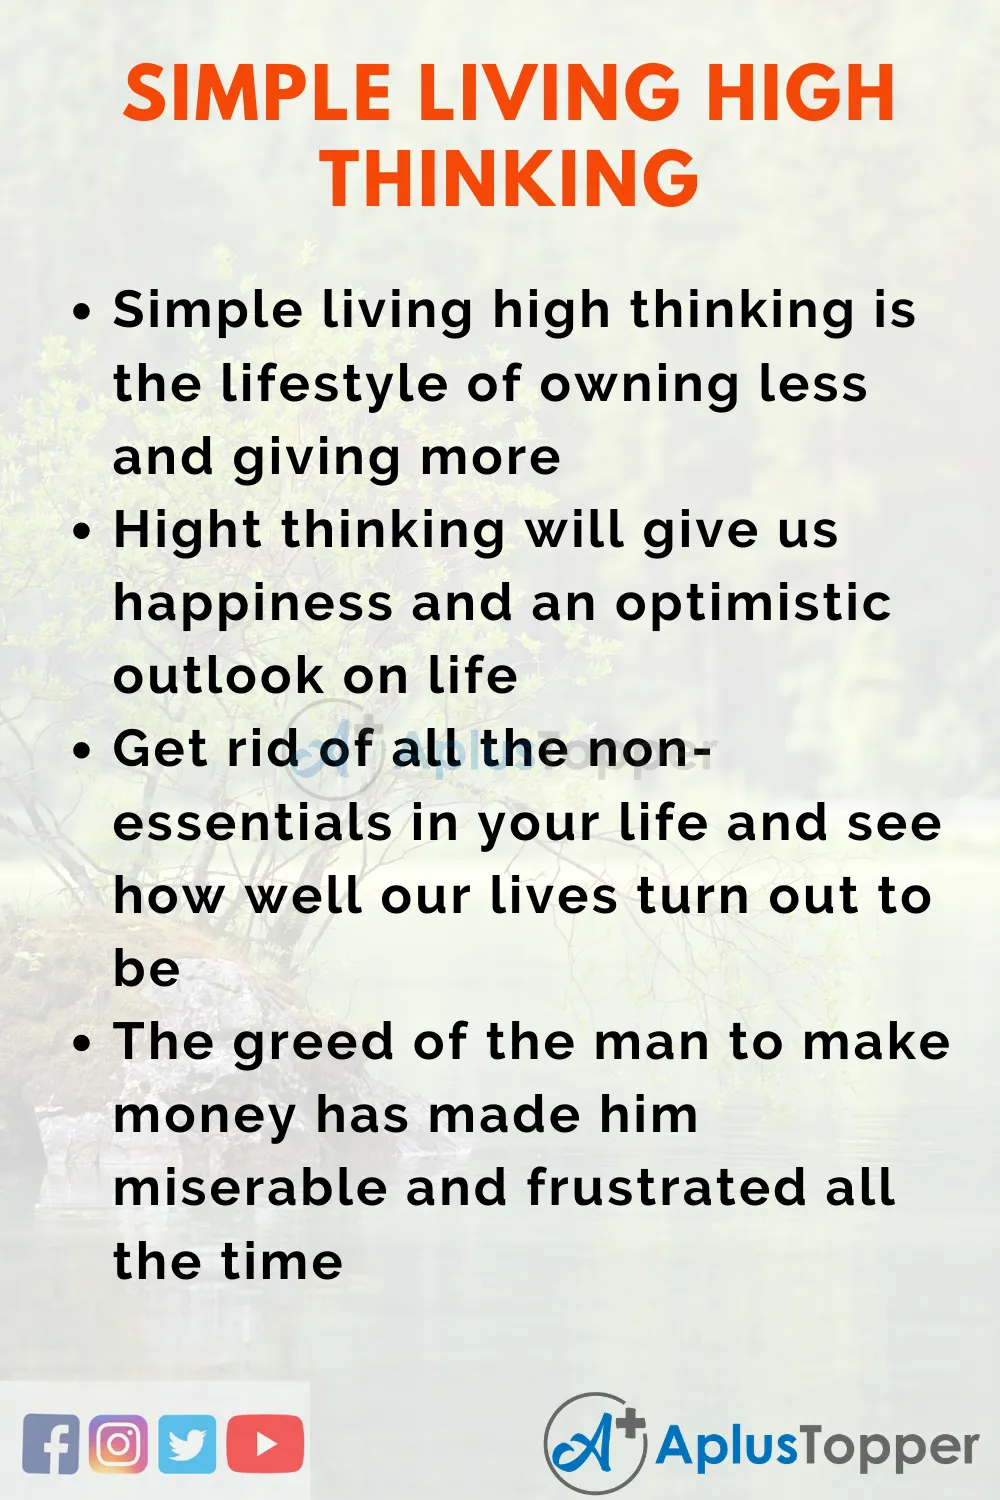 Essay On Simple Living High Thinking Essayonsimplelivinghighthinking Simplelivinghighthinkingessay Aplustopper Help The Poor Writing Competition About People